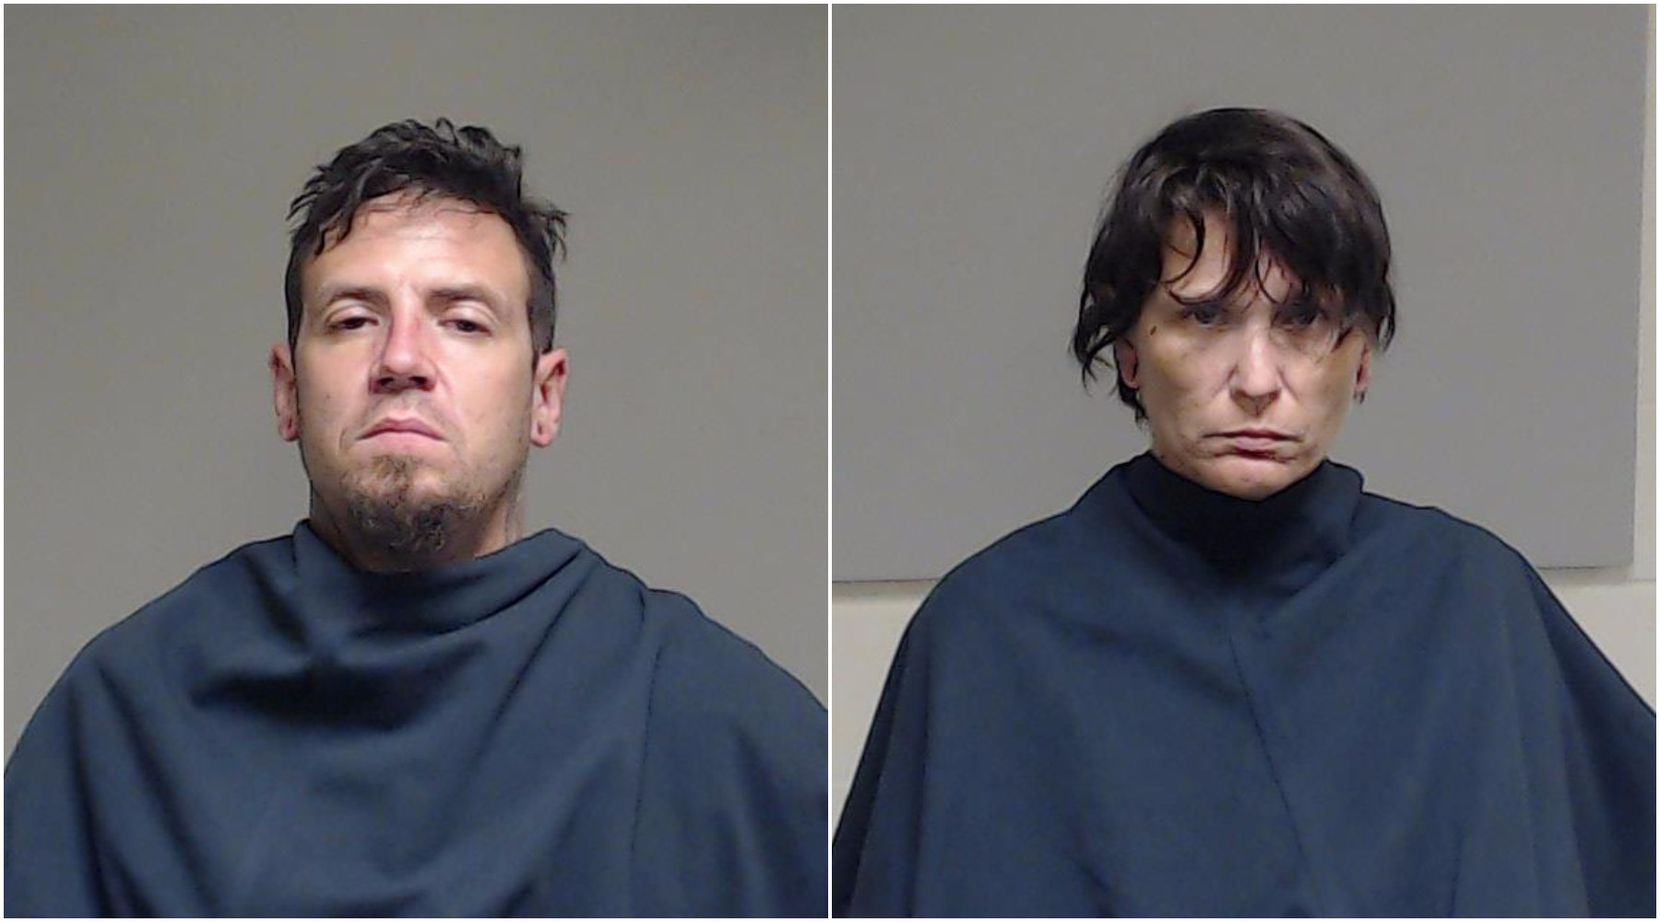 Roland and Donna Grabowski each face several felony charges in connection with the death and disappearance of their week-old son, Micah, Collin County authorities said.